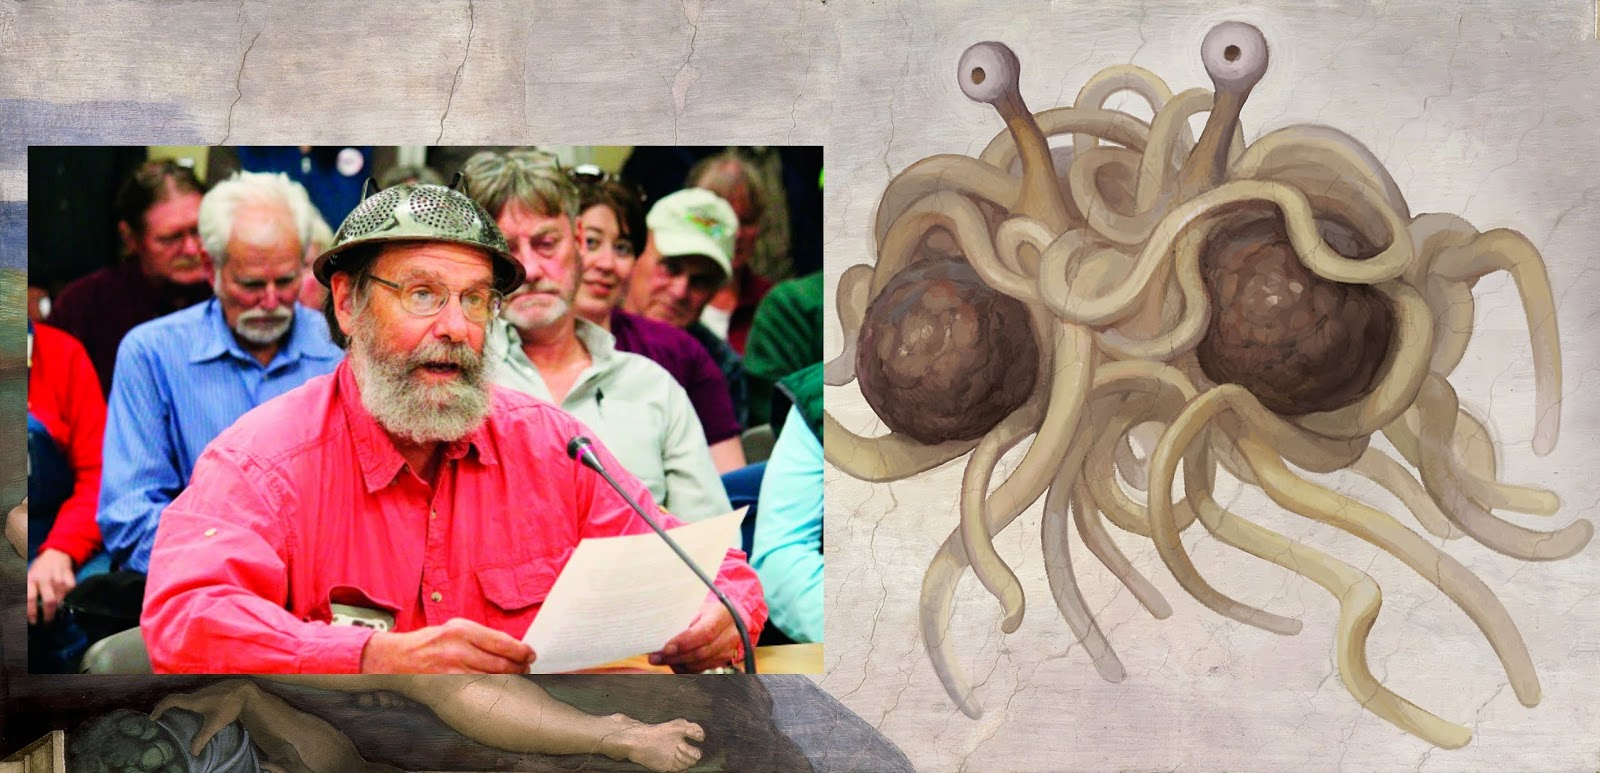 Pastafarian, Barrett Fletcher, Flying Spaghetti Monster